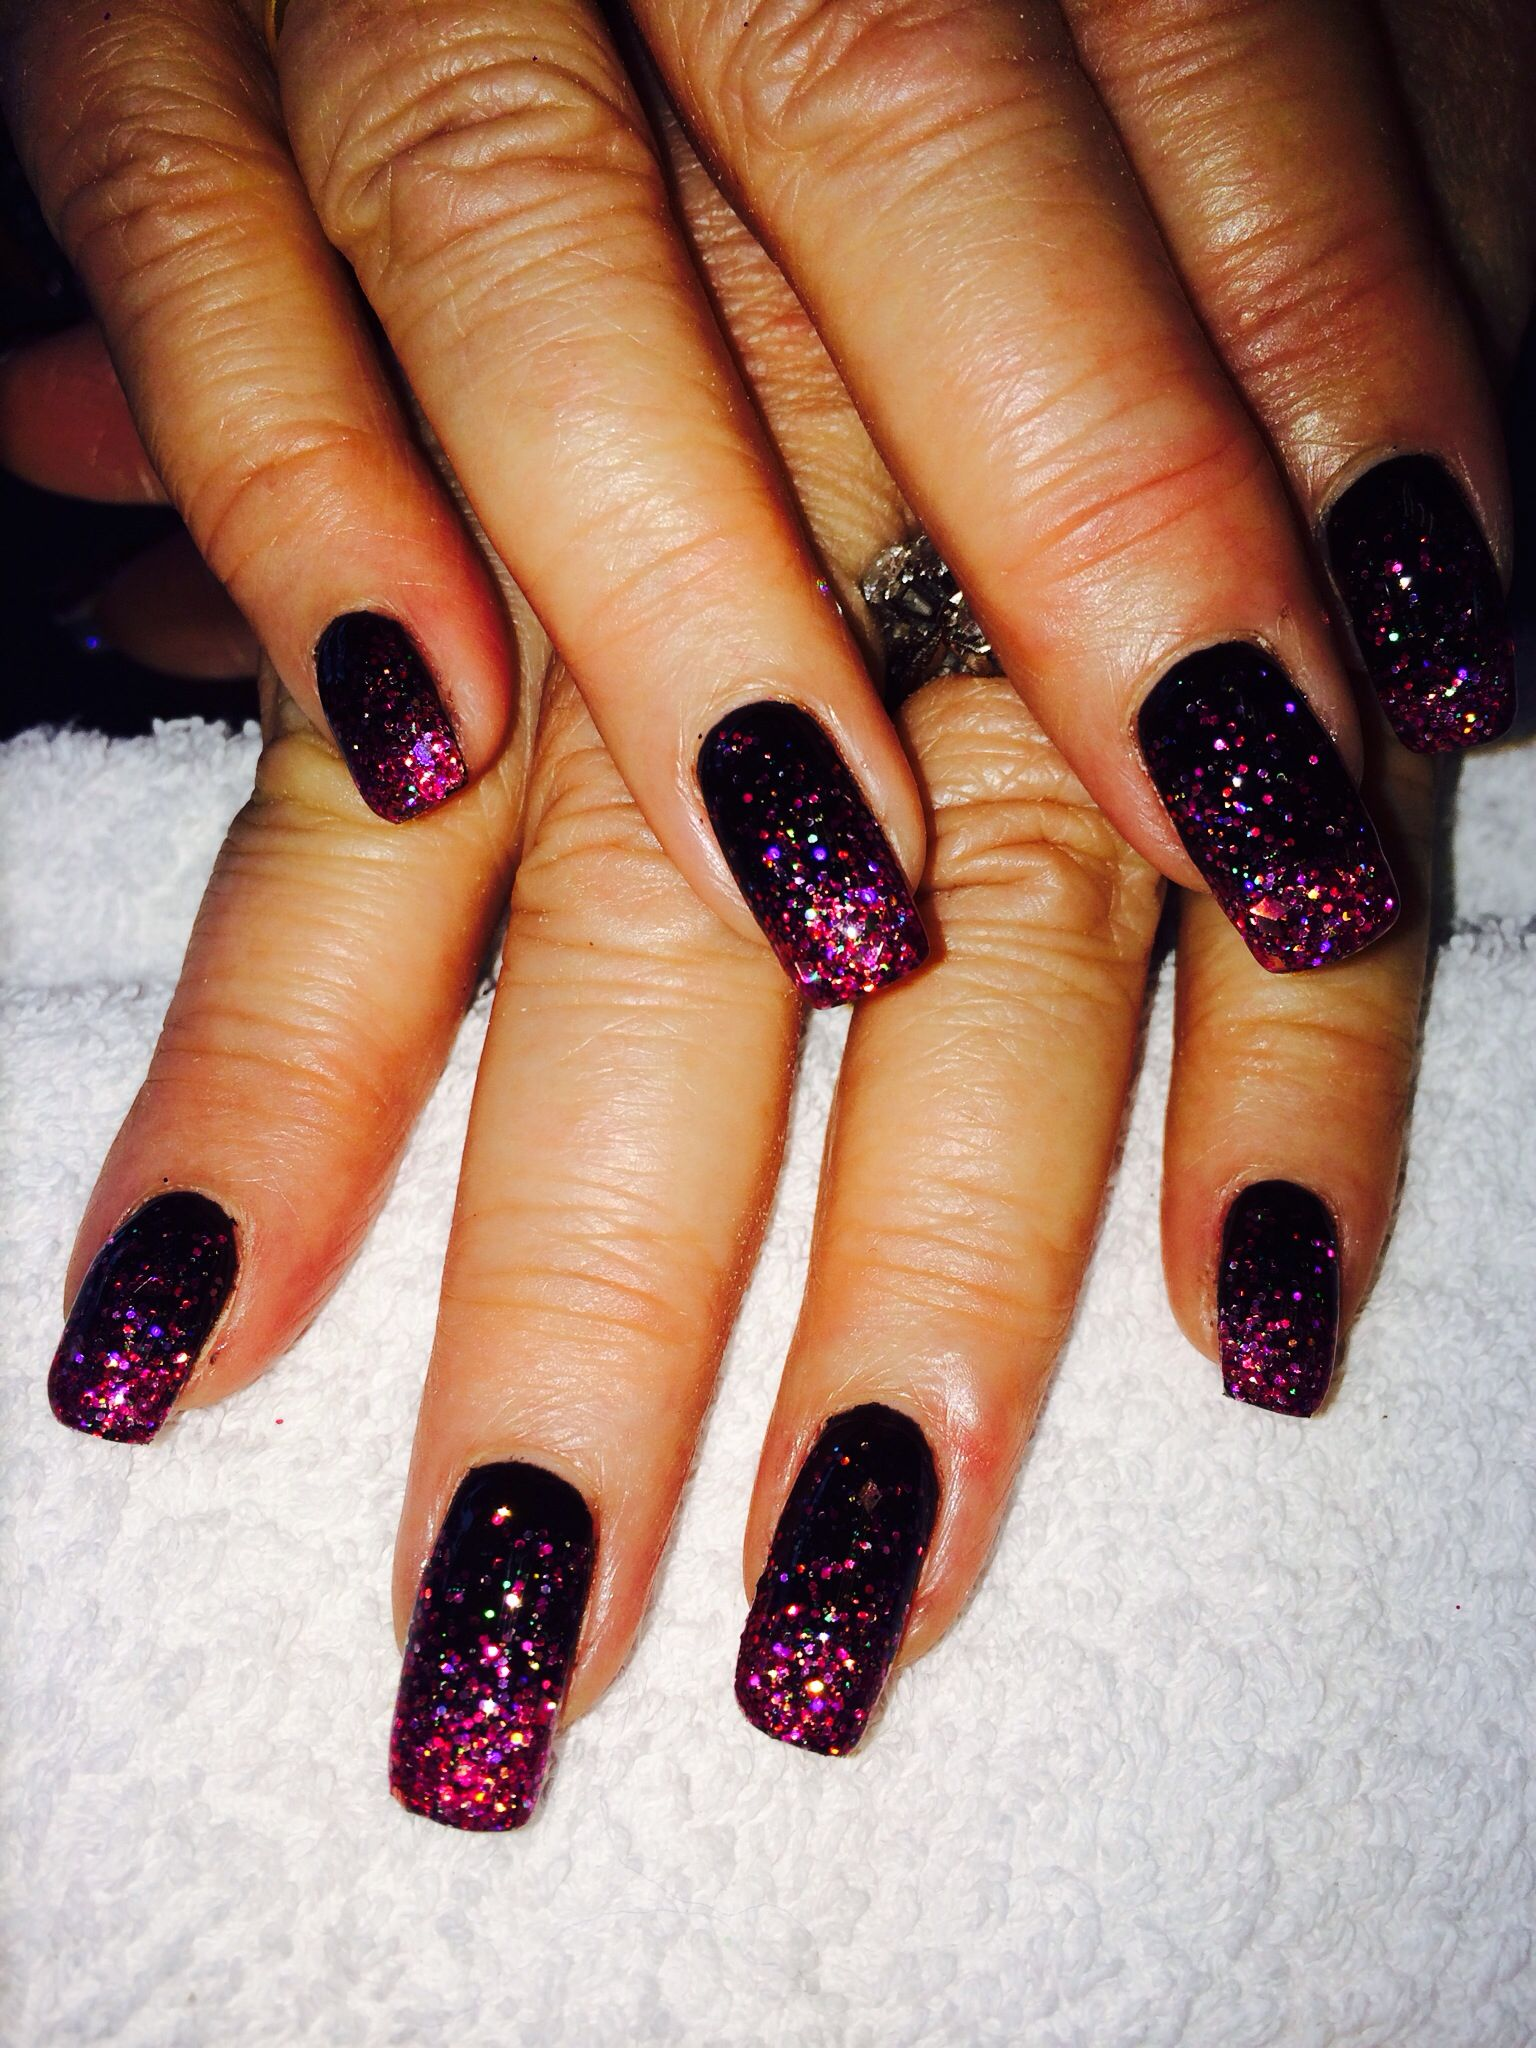 fabulous black bio sculpture gel nails with pink faded glitter